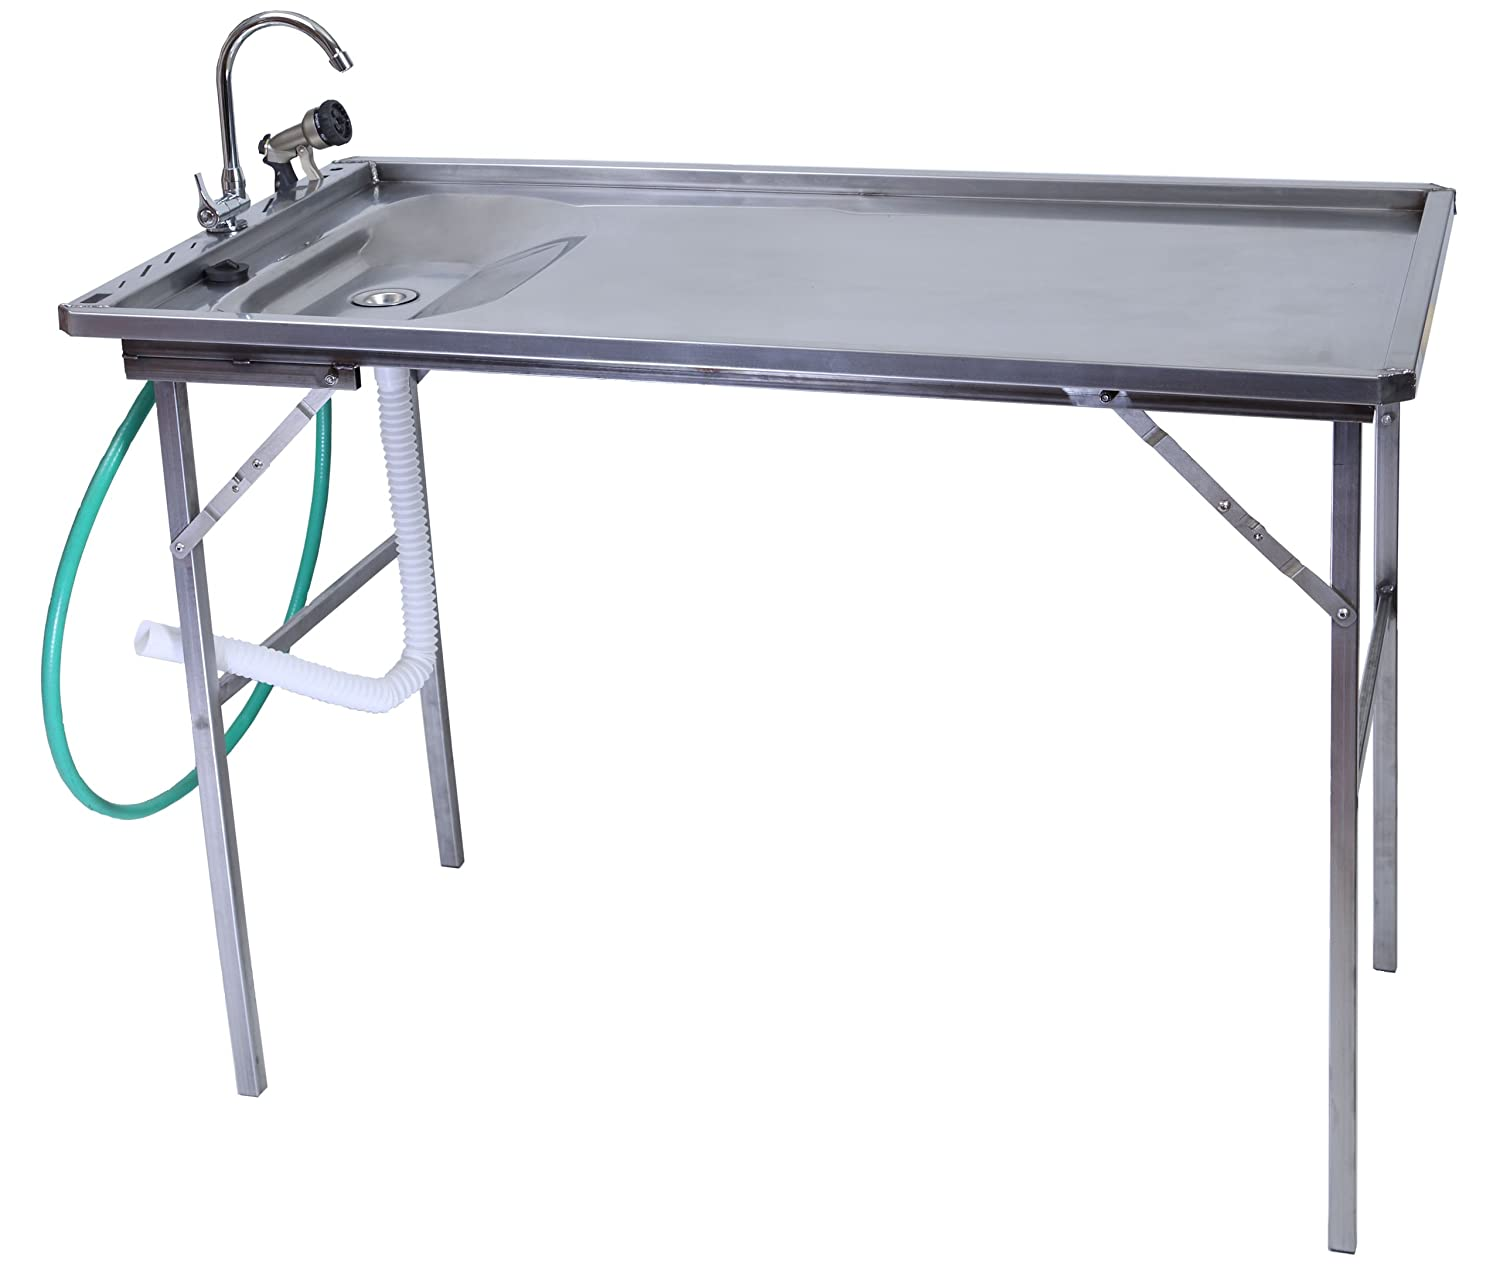 Organized Fishing Folding Tables For Outdoor Kitchens Or Fish Cleaning Built In Sinks